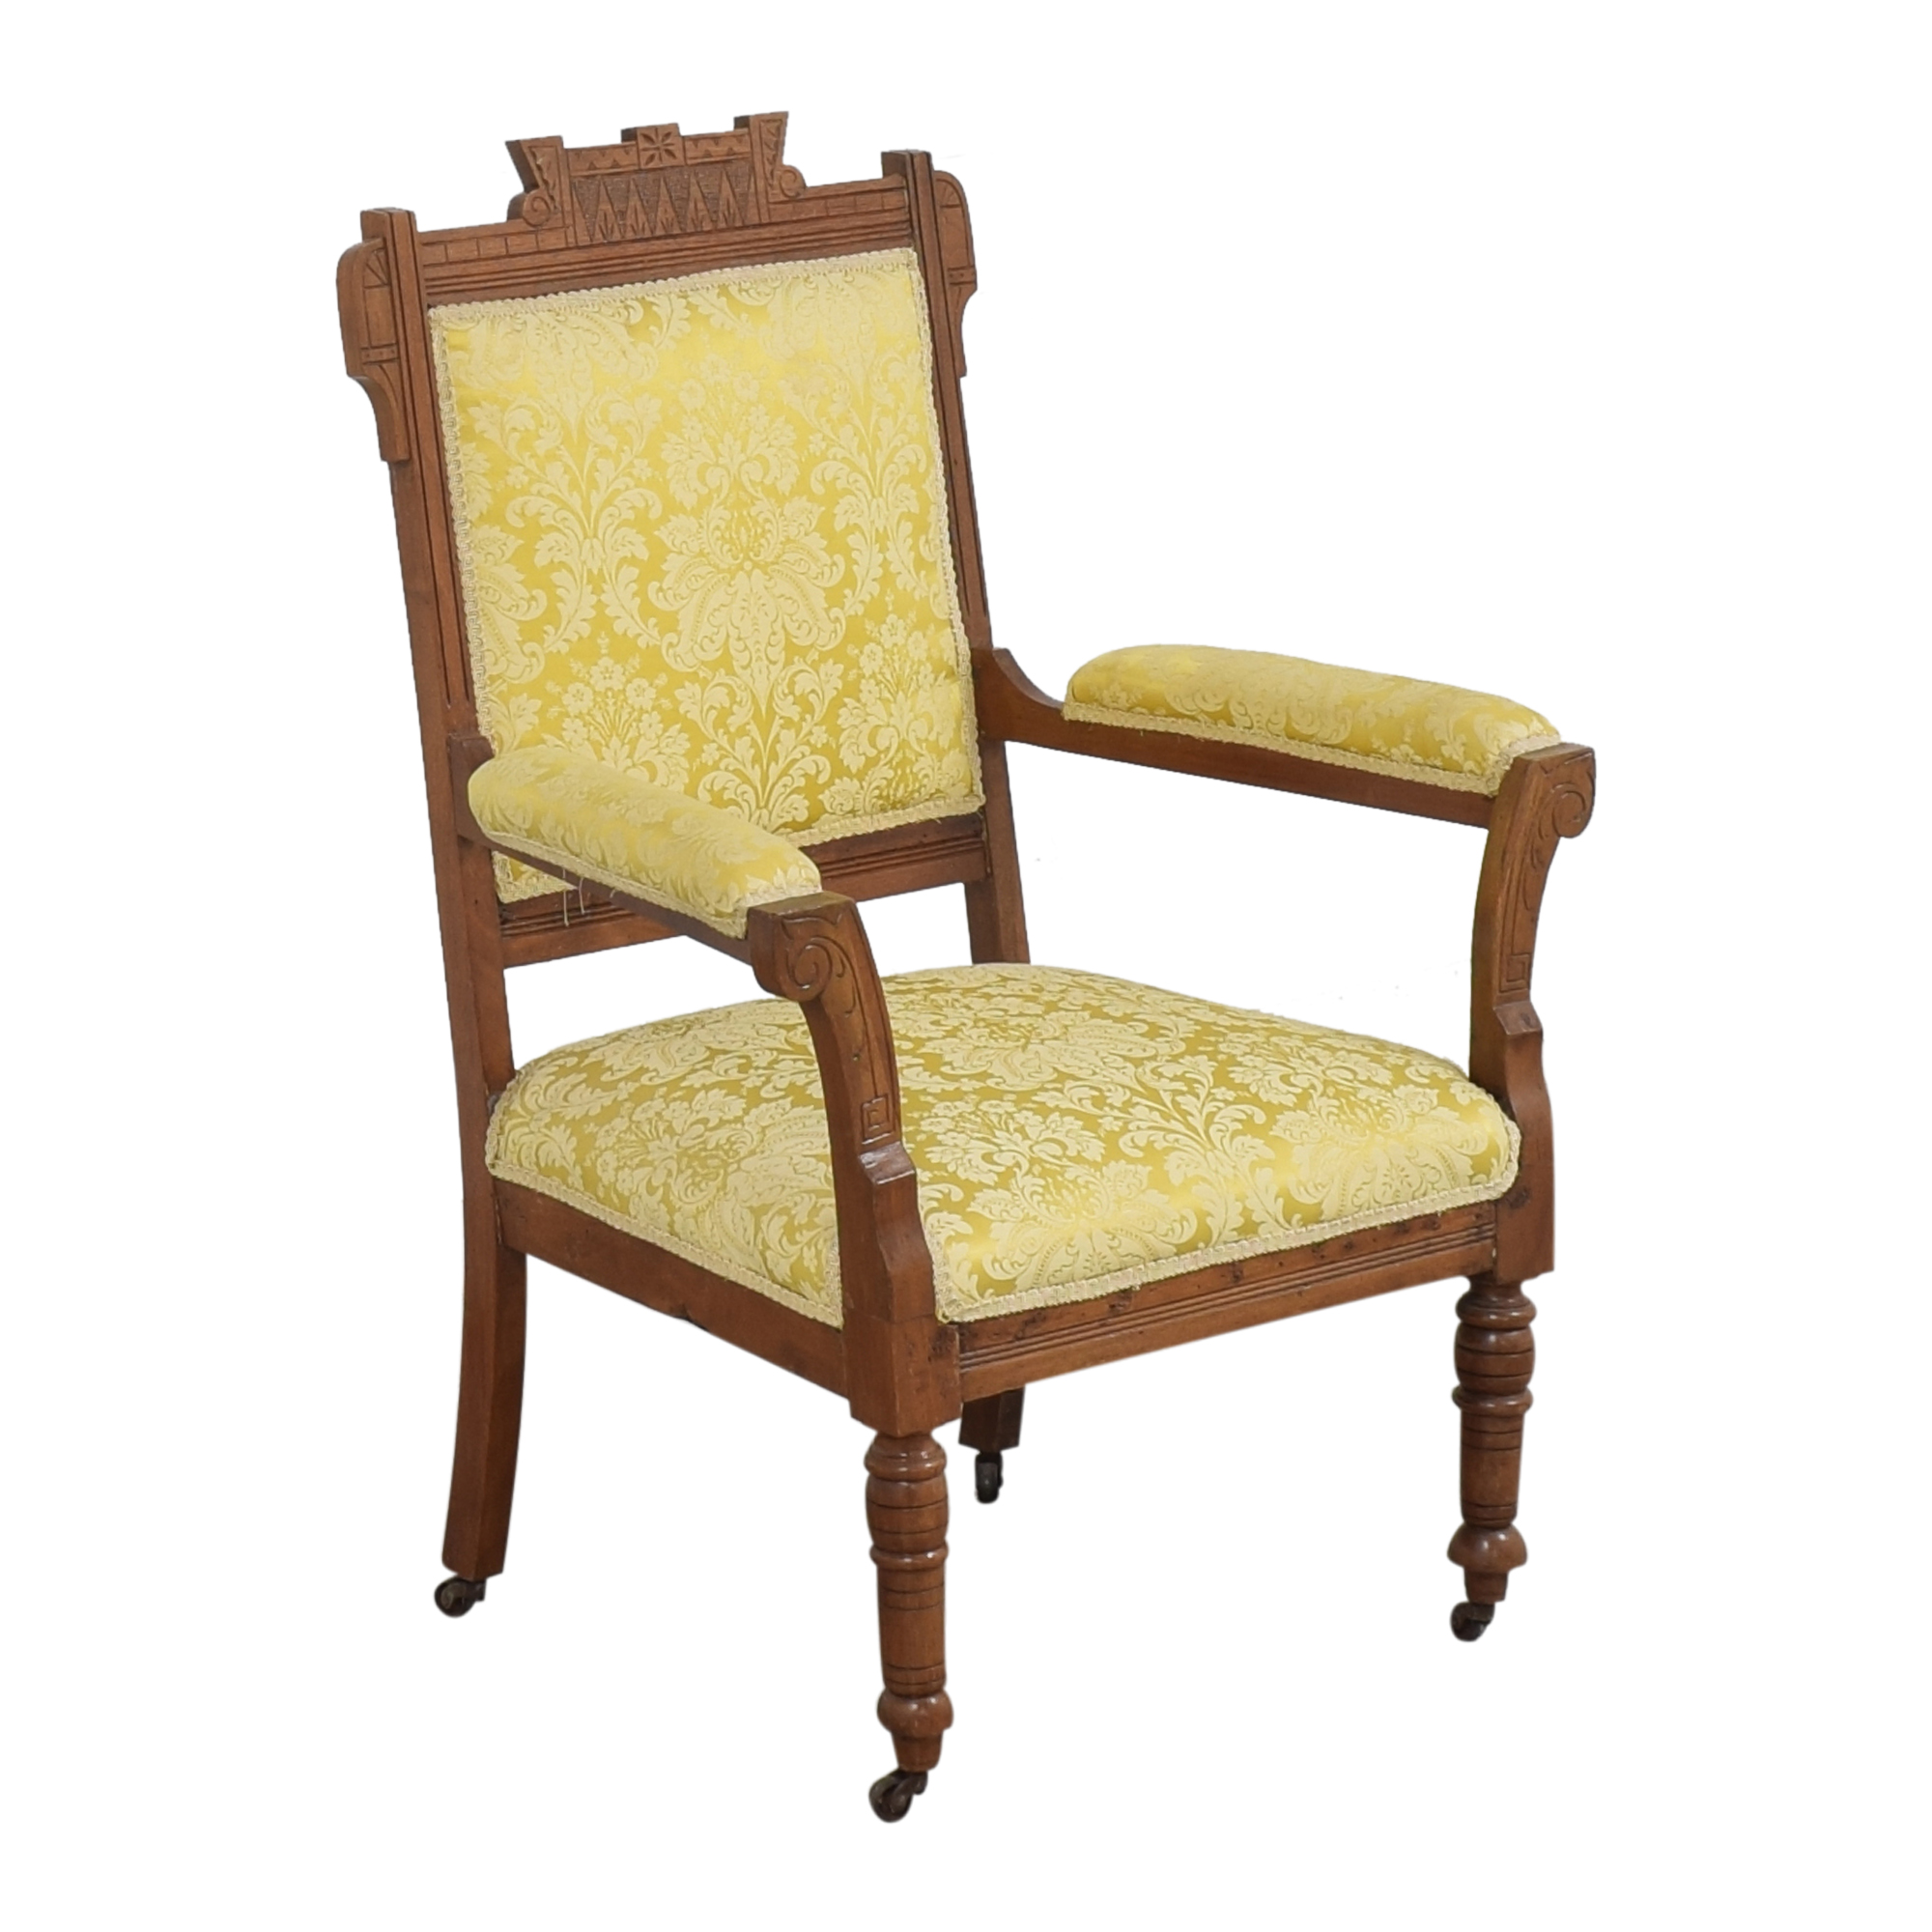 Carved Accent Chair dimensions